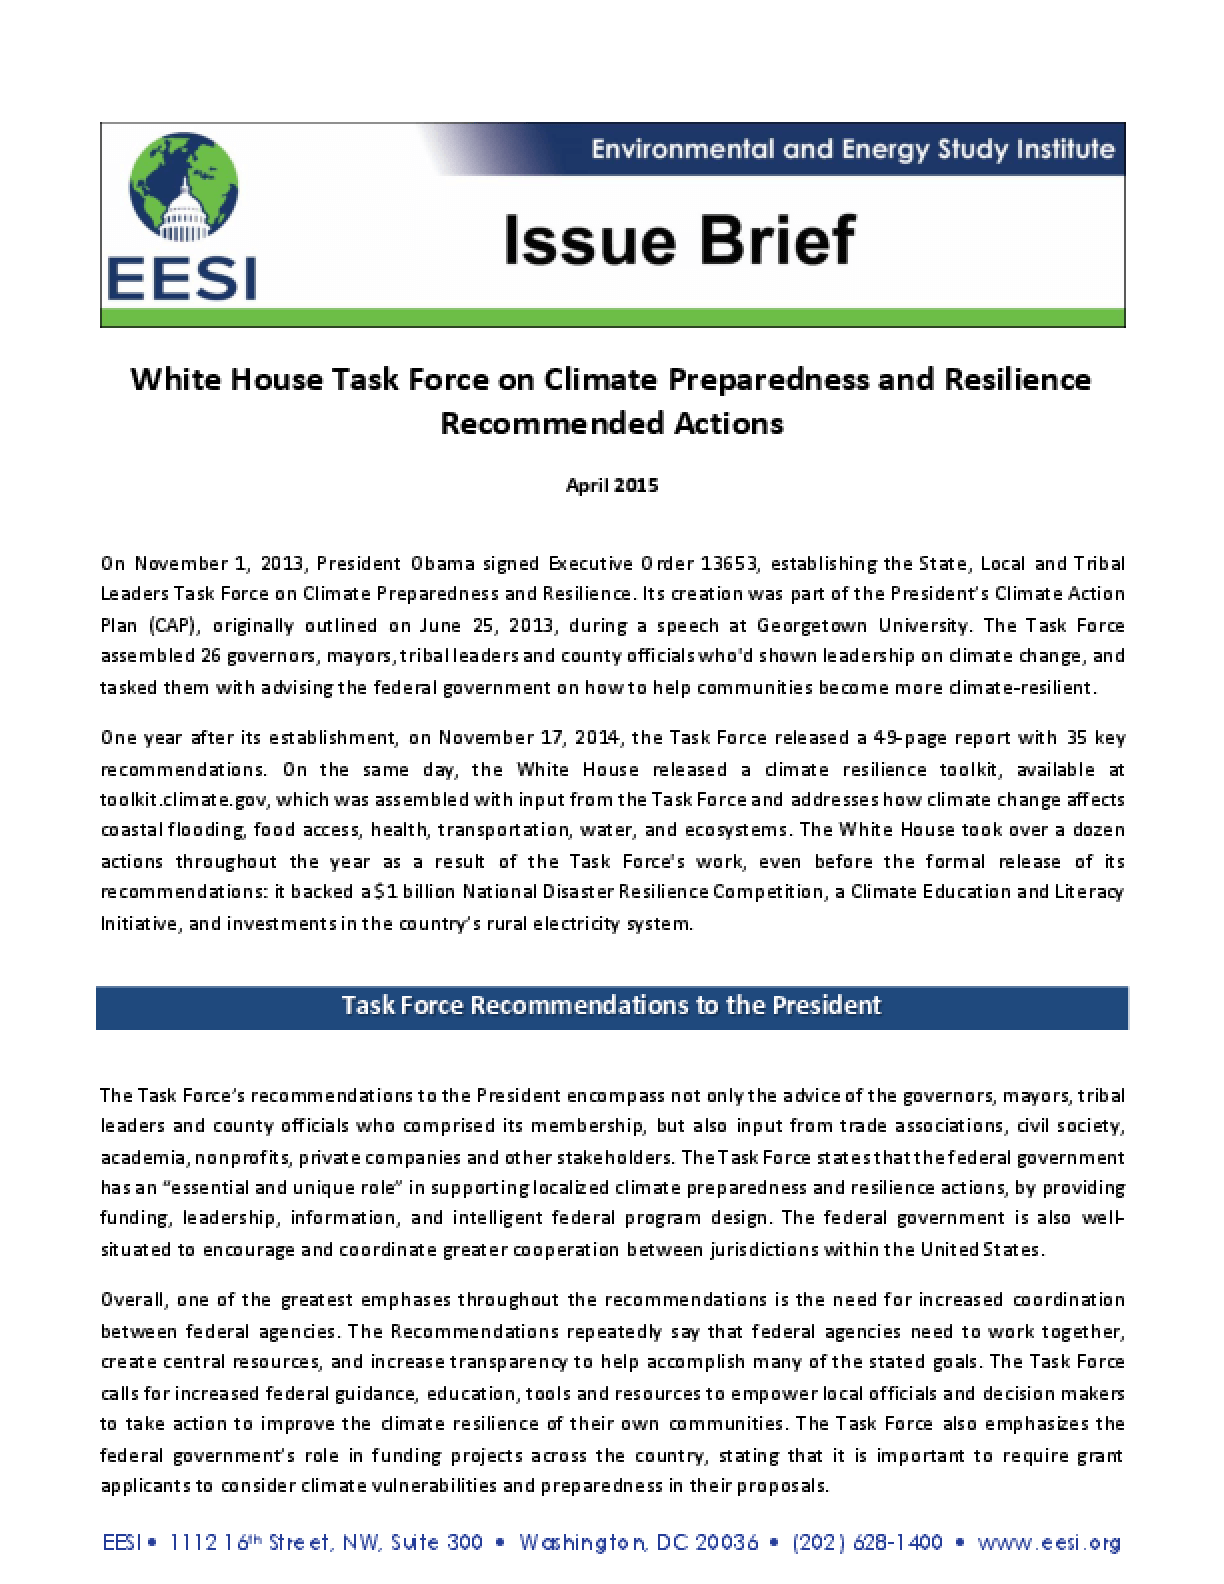 Issue Brief: White House Task Force on Climate Preparedness and ...